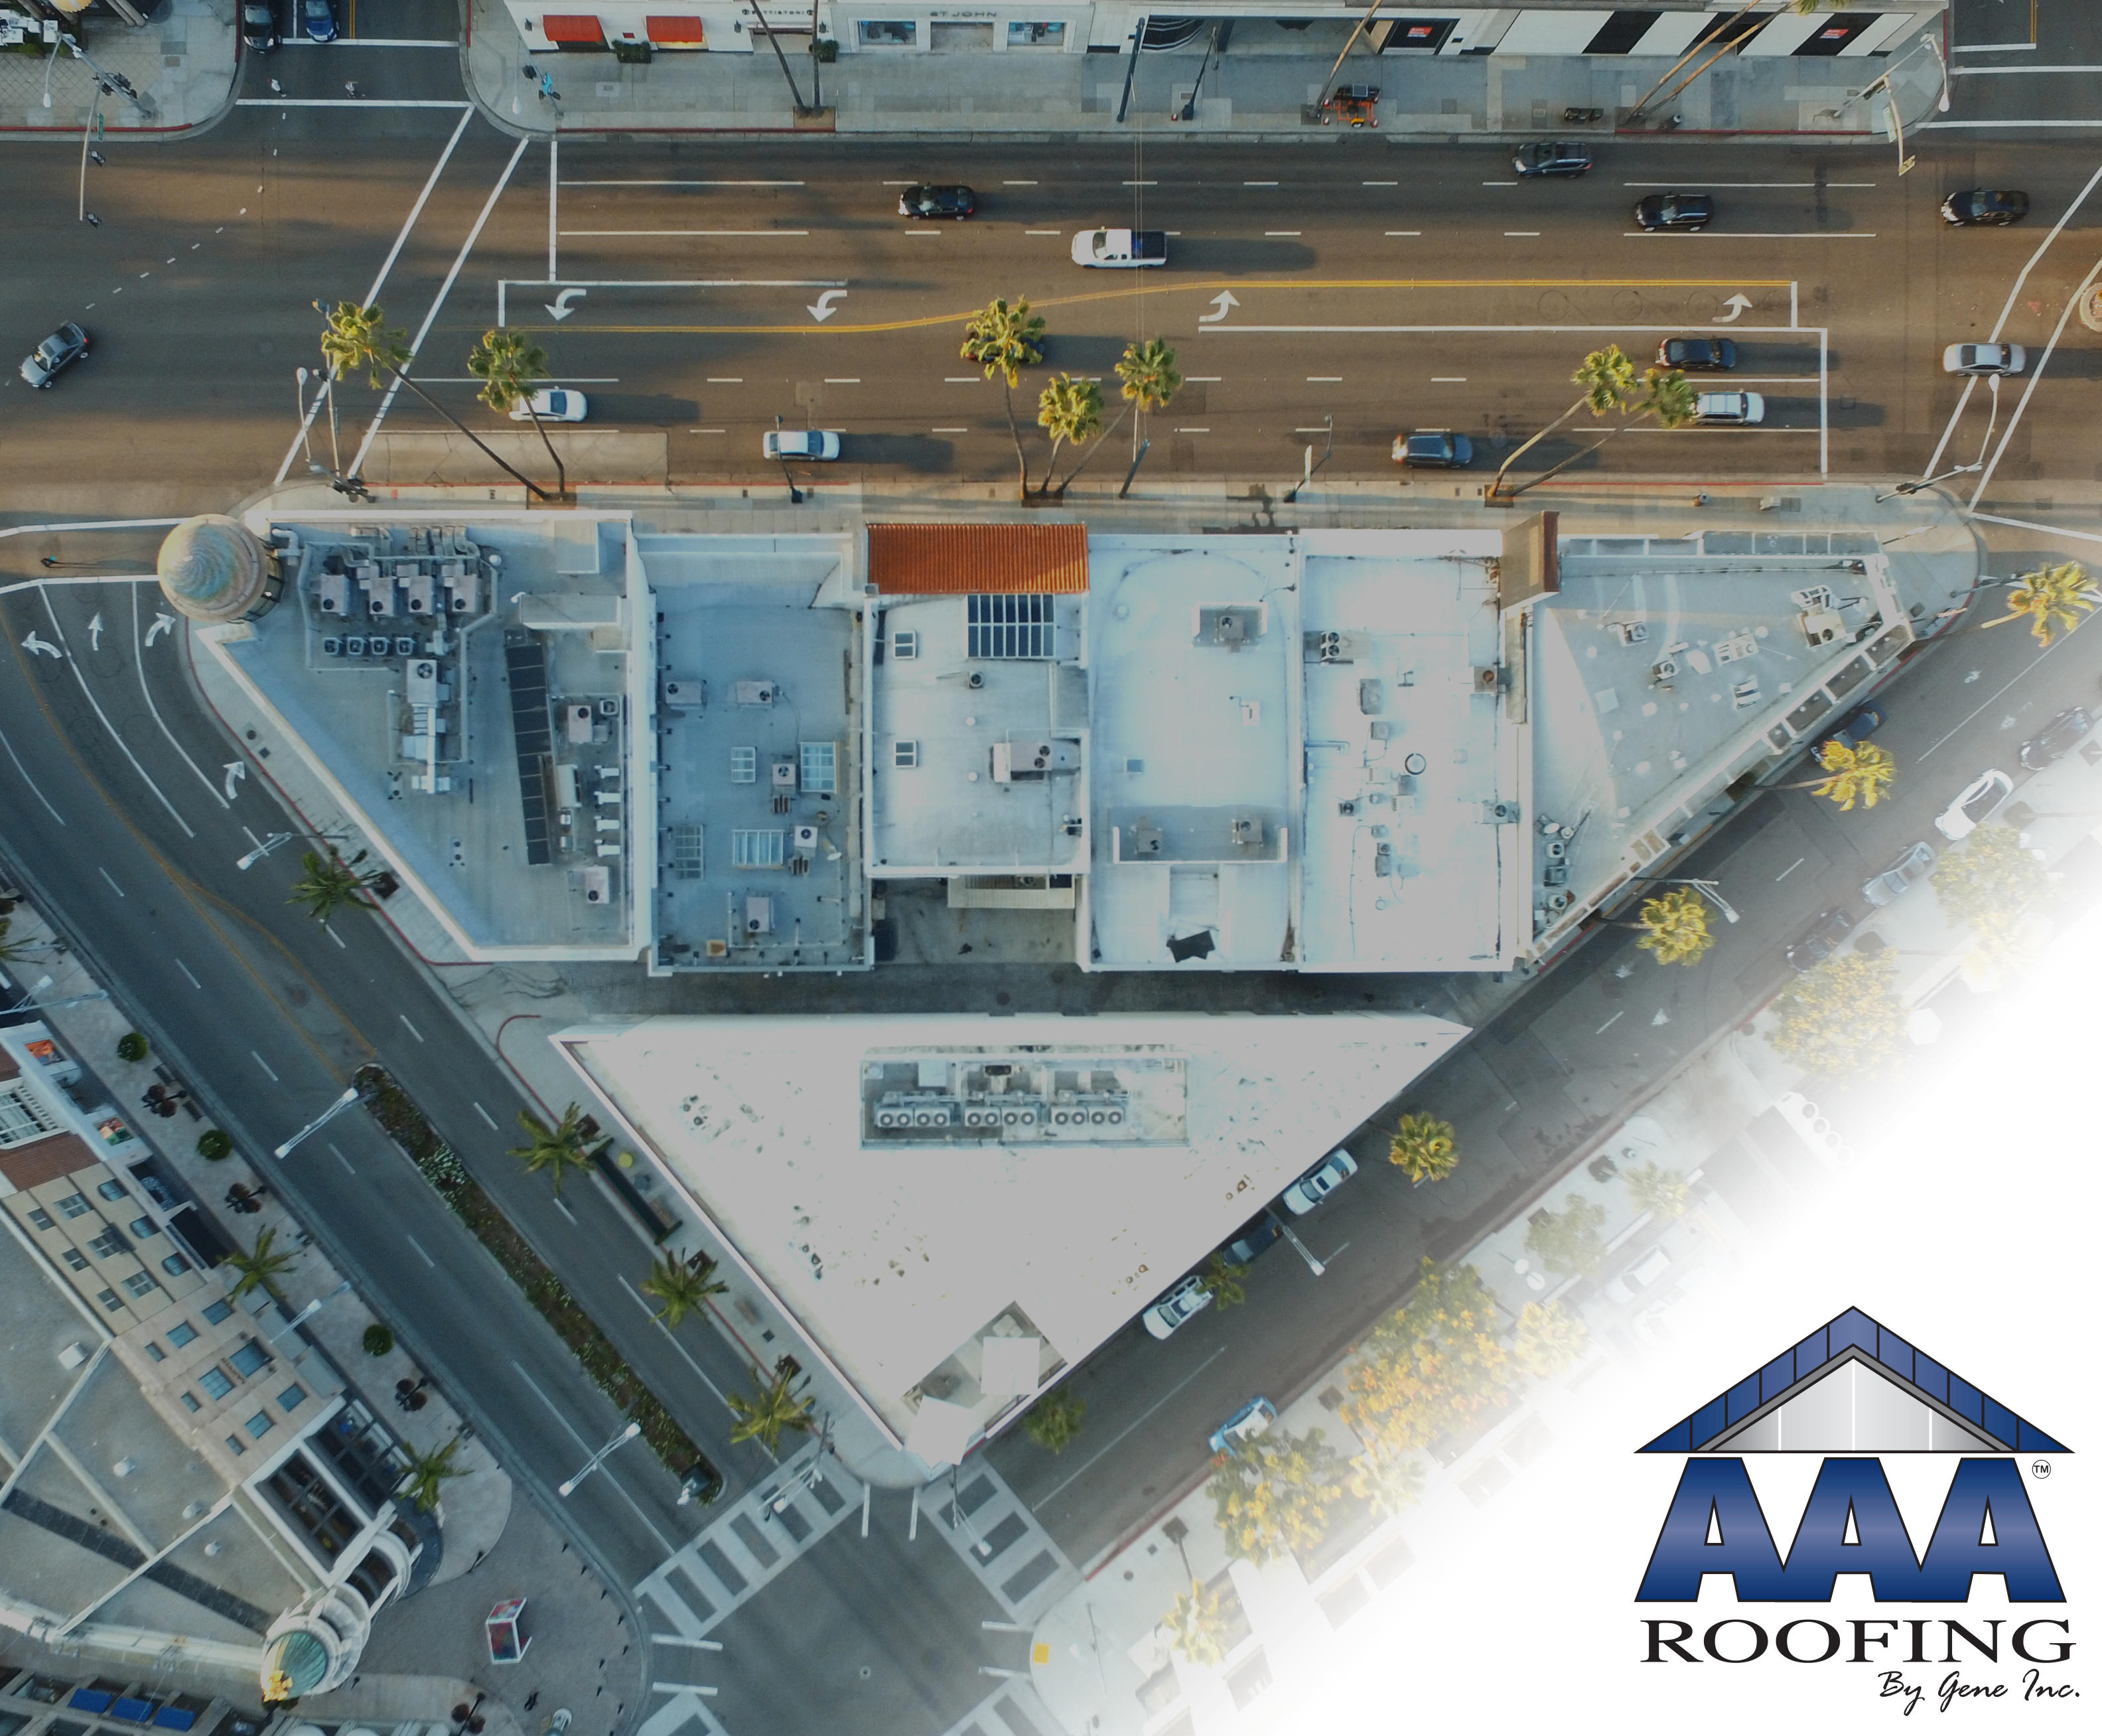 AAA Roofing by Gene image 1